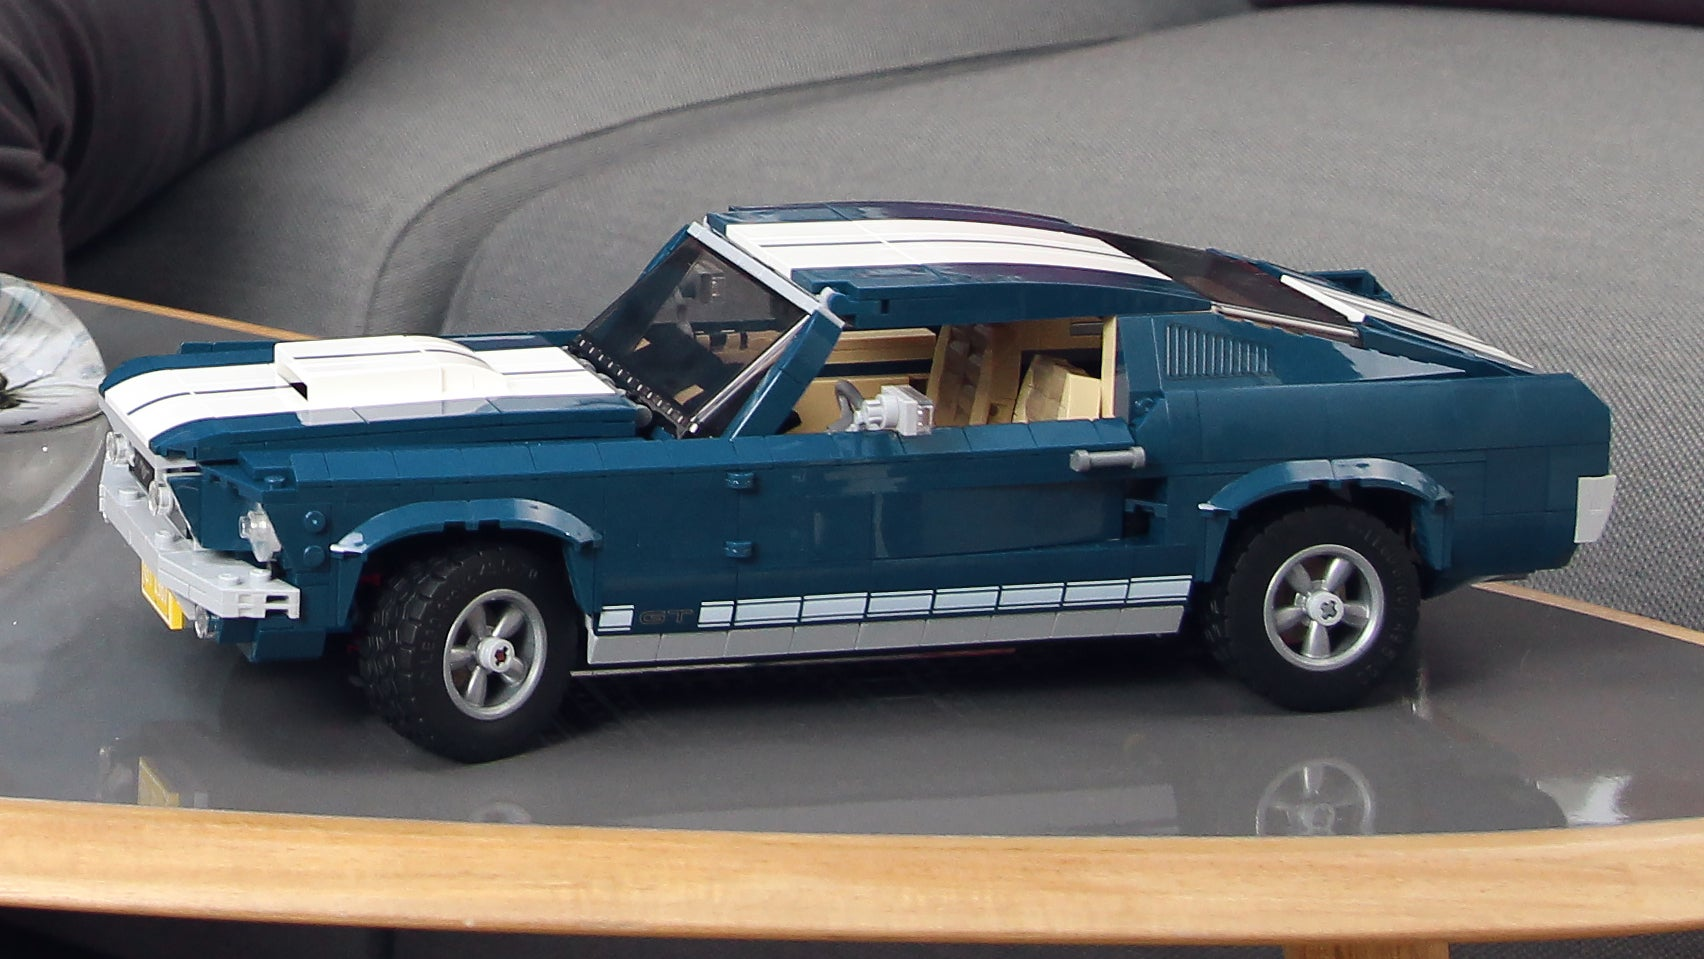 Lego Ford Mustang : if you can 39 t afford a real 1967 ford mustang there 39 s always this lego version gizmodo australia ~ Aude.kayakingforconservation.com Haus und Dekorationen